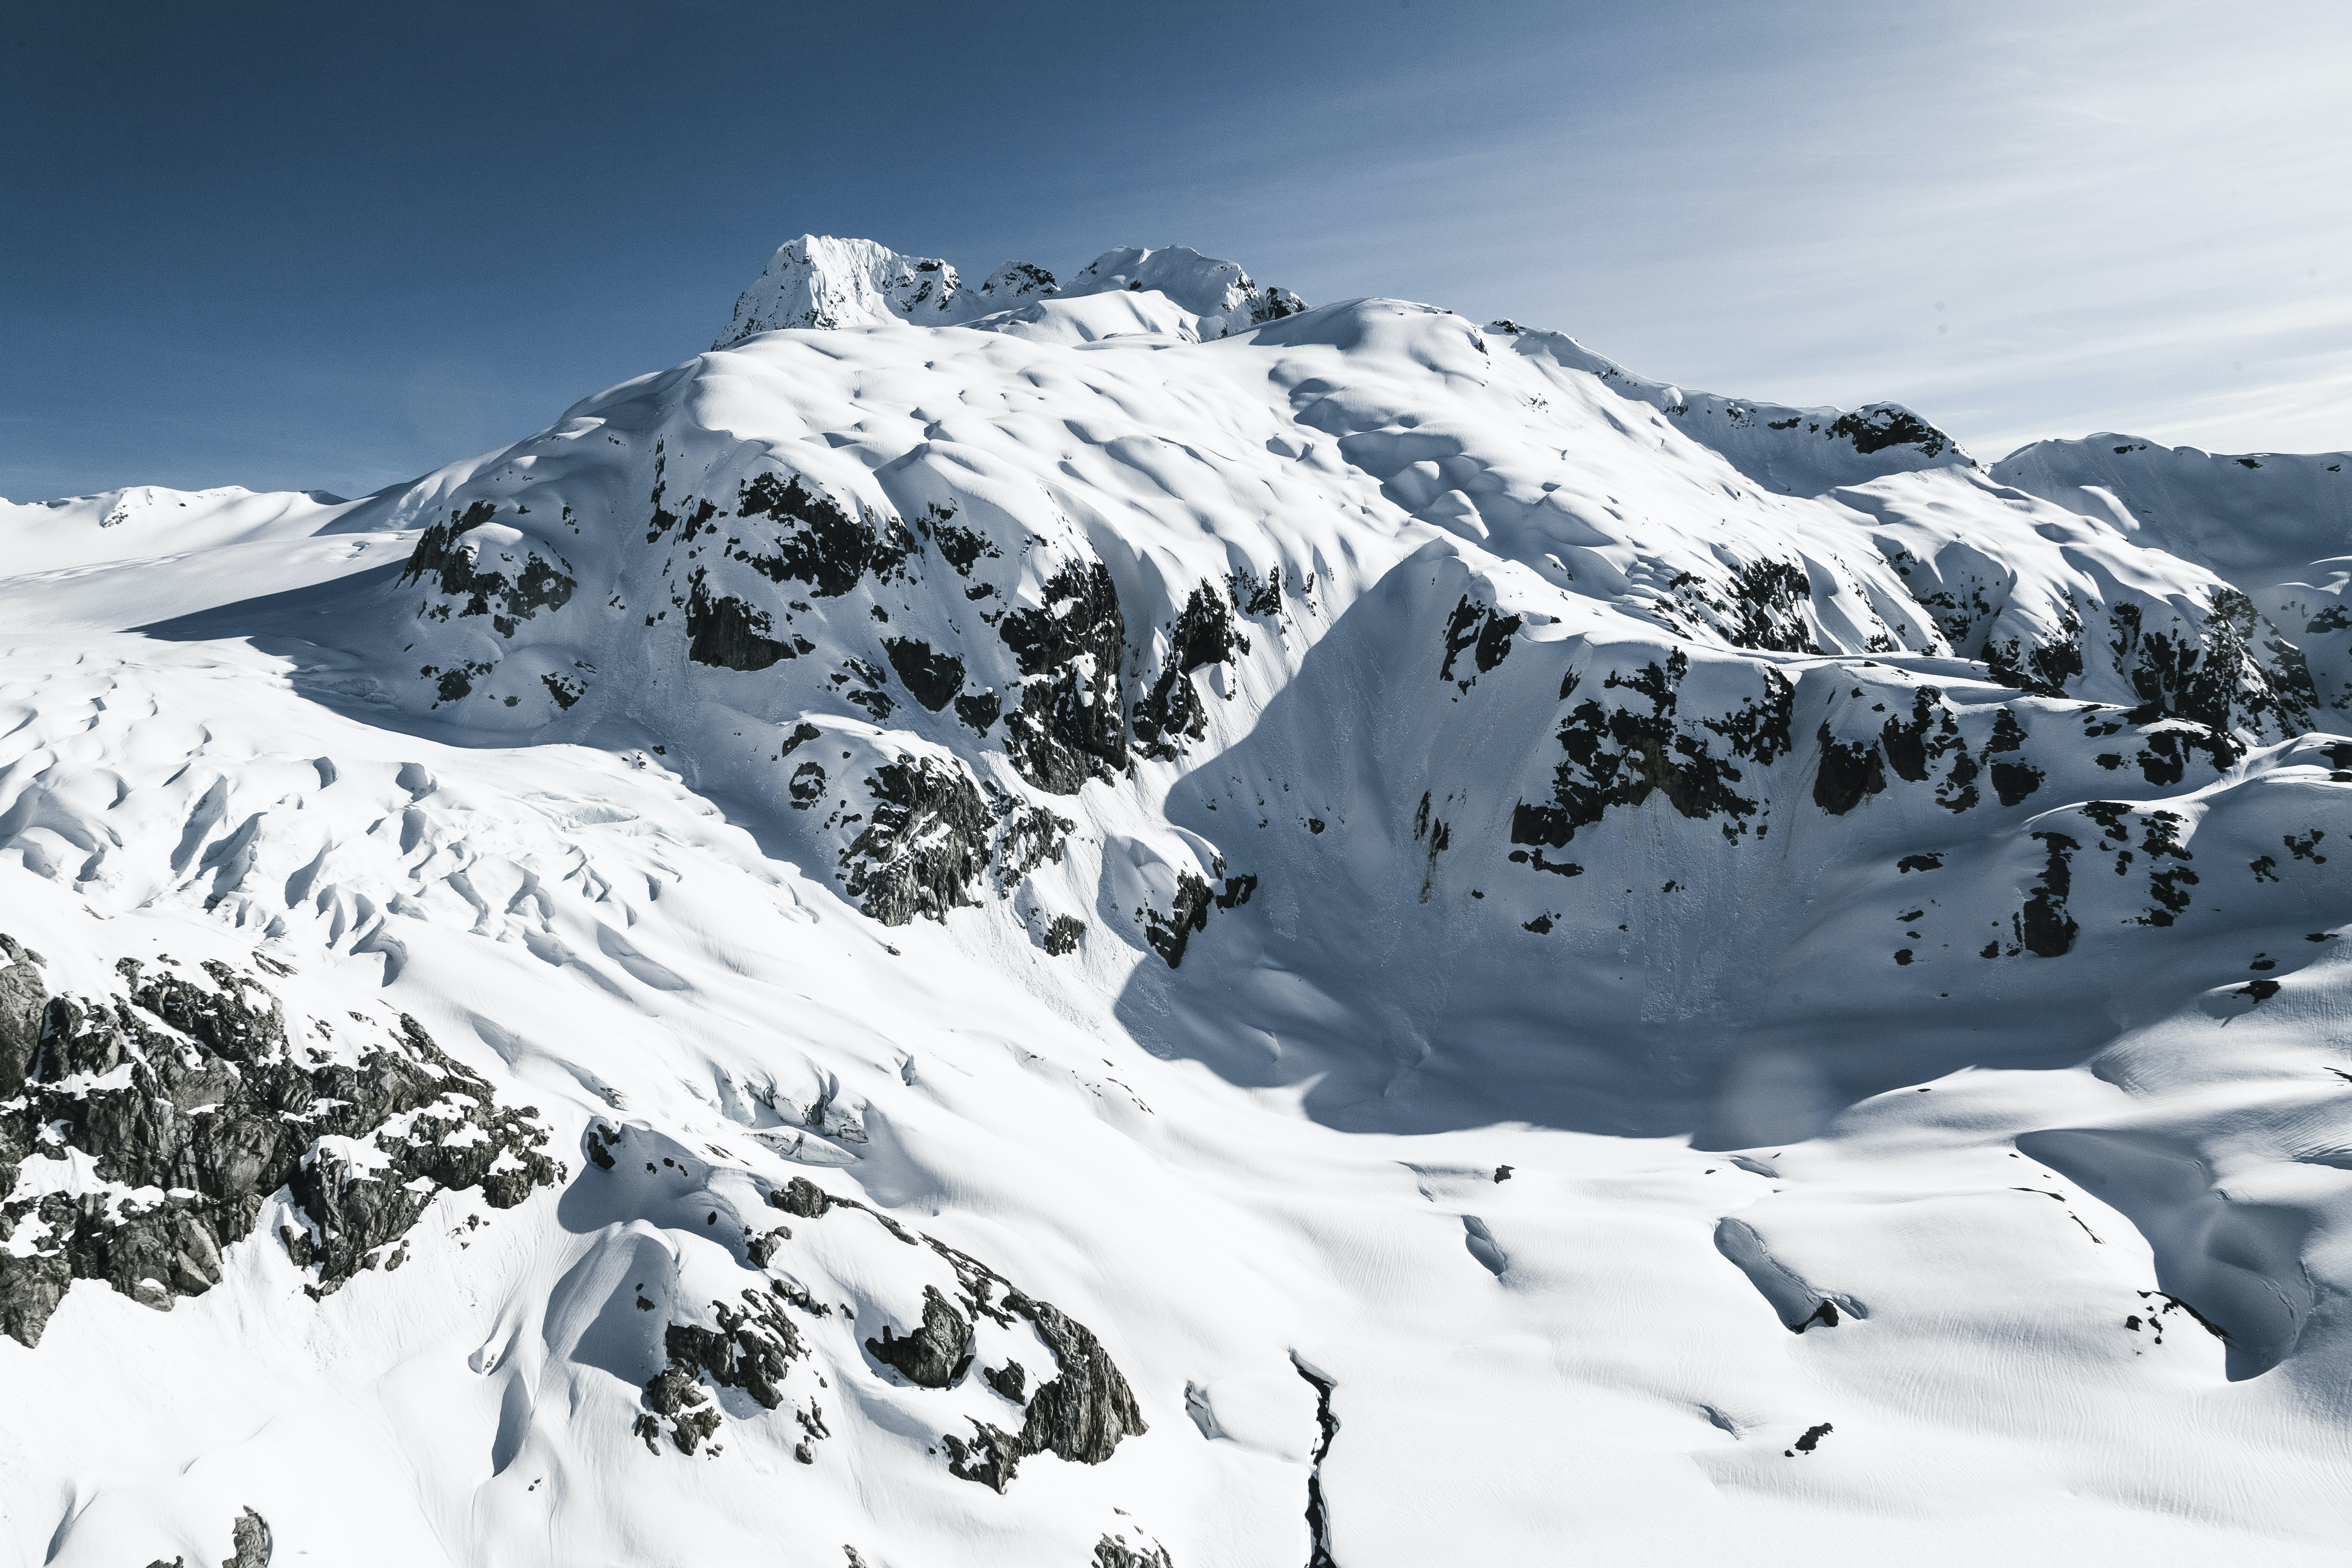 The mountains of Golden Ears Provincial Park in Maple Ridge, British Columbia laden with snow